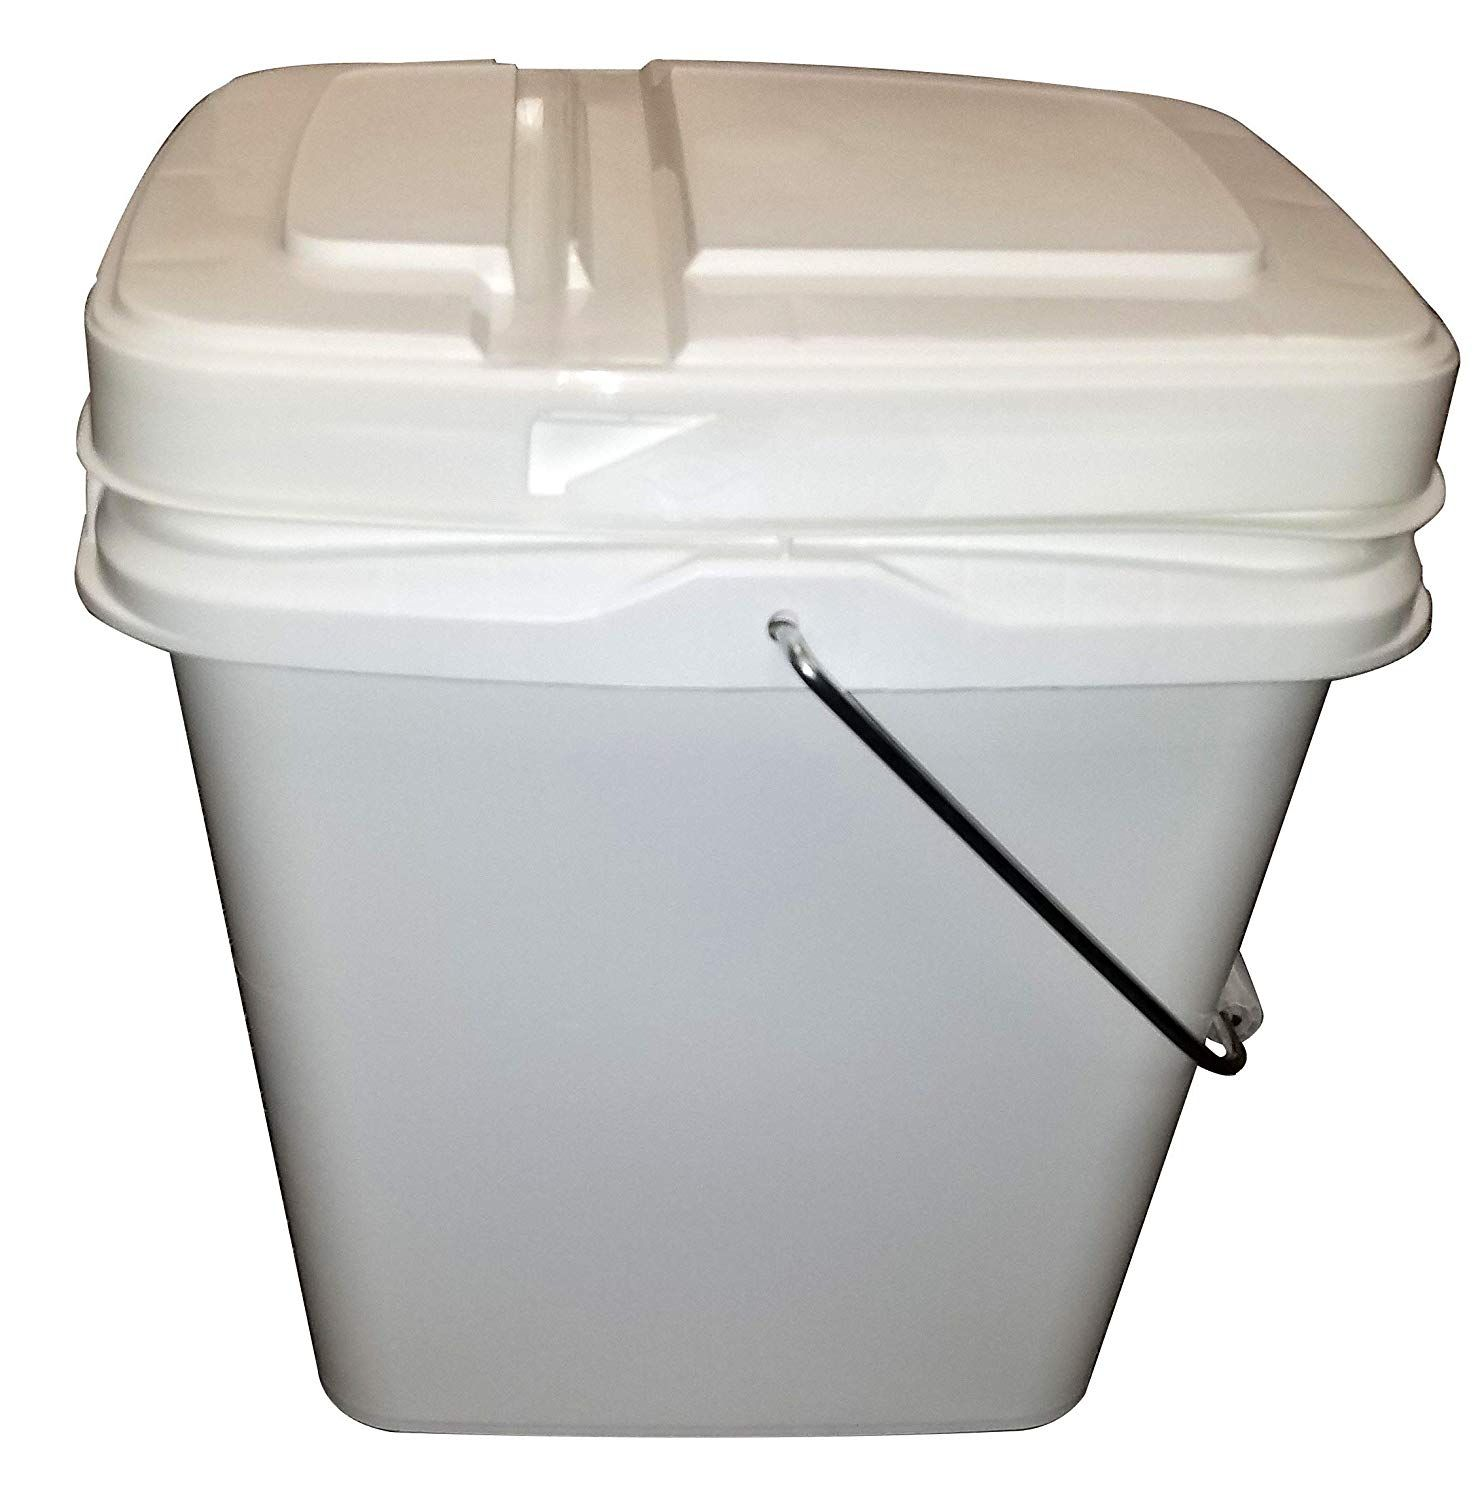 2 Gallon White Rectangle Pail With Metal Handle And Hinged Lid 10 Pack Hinged Lid Preppers Storage Pail